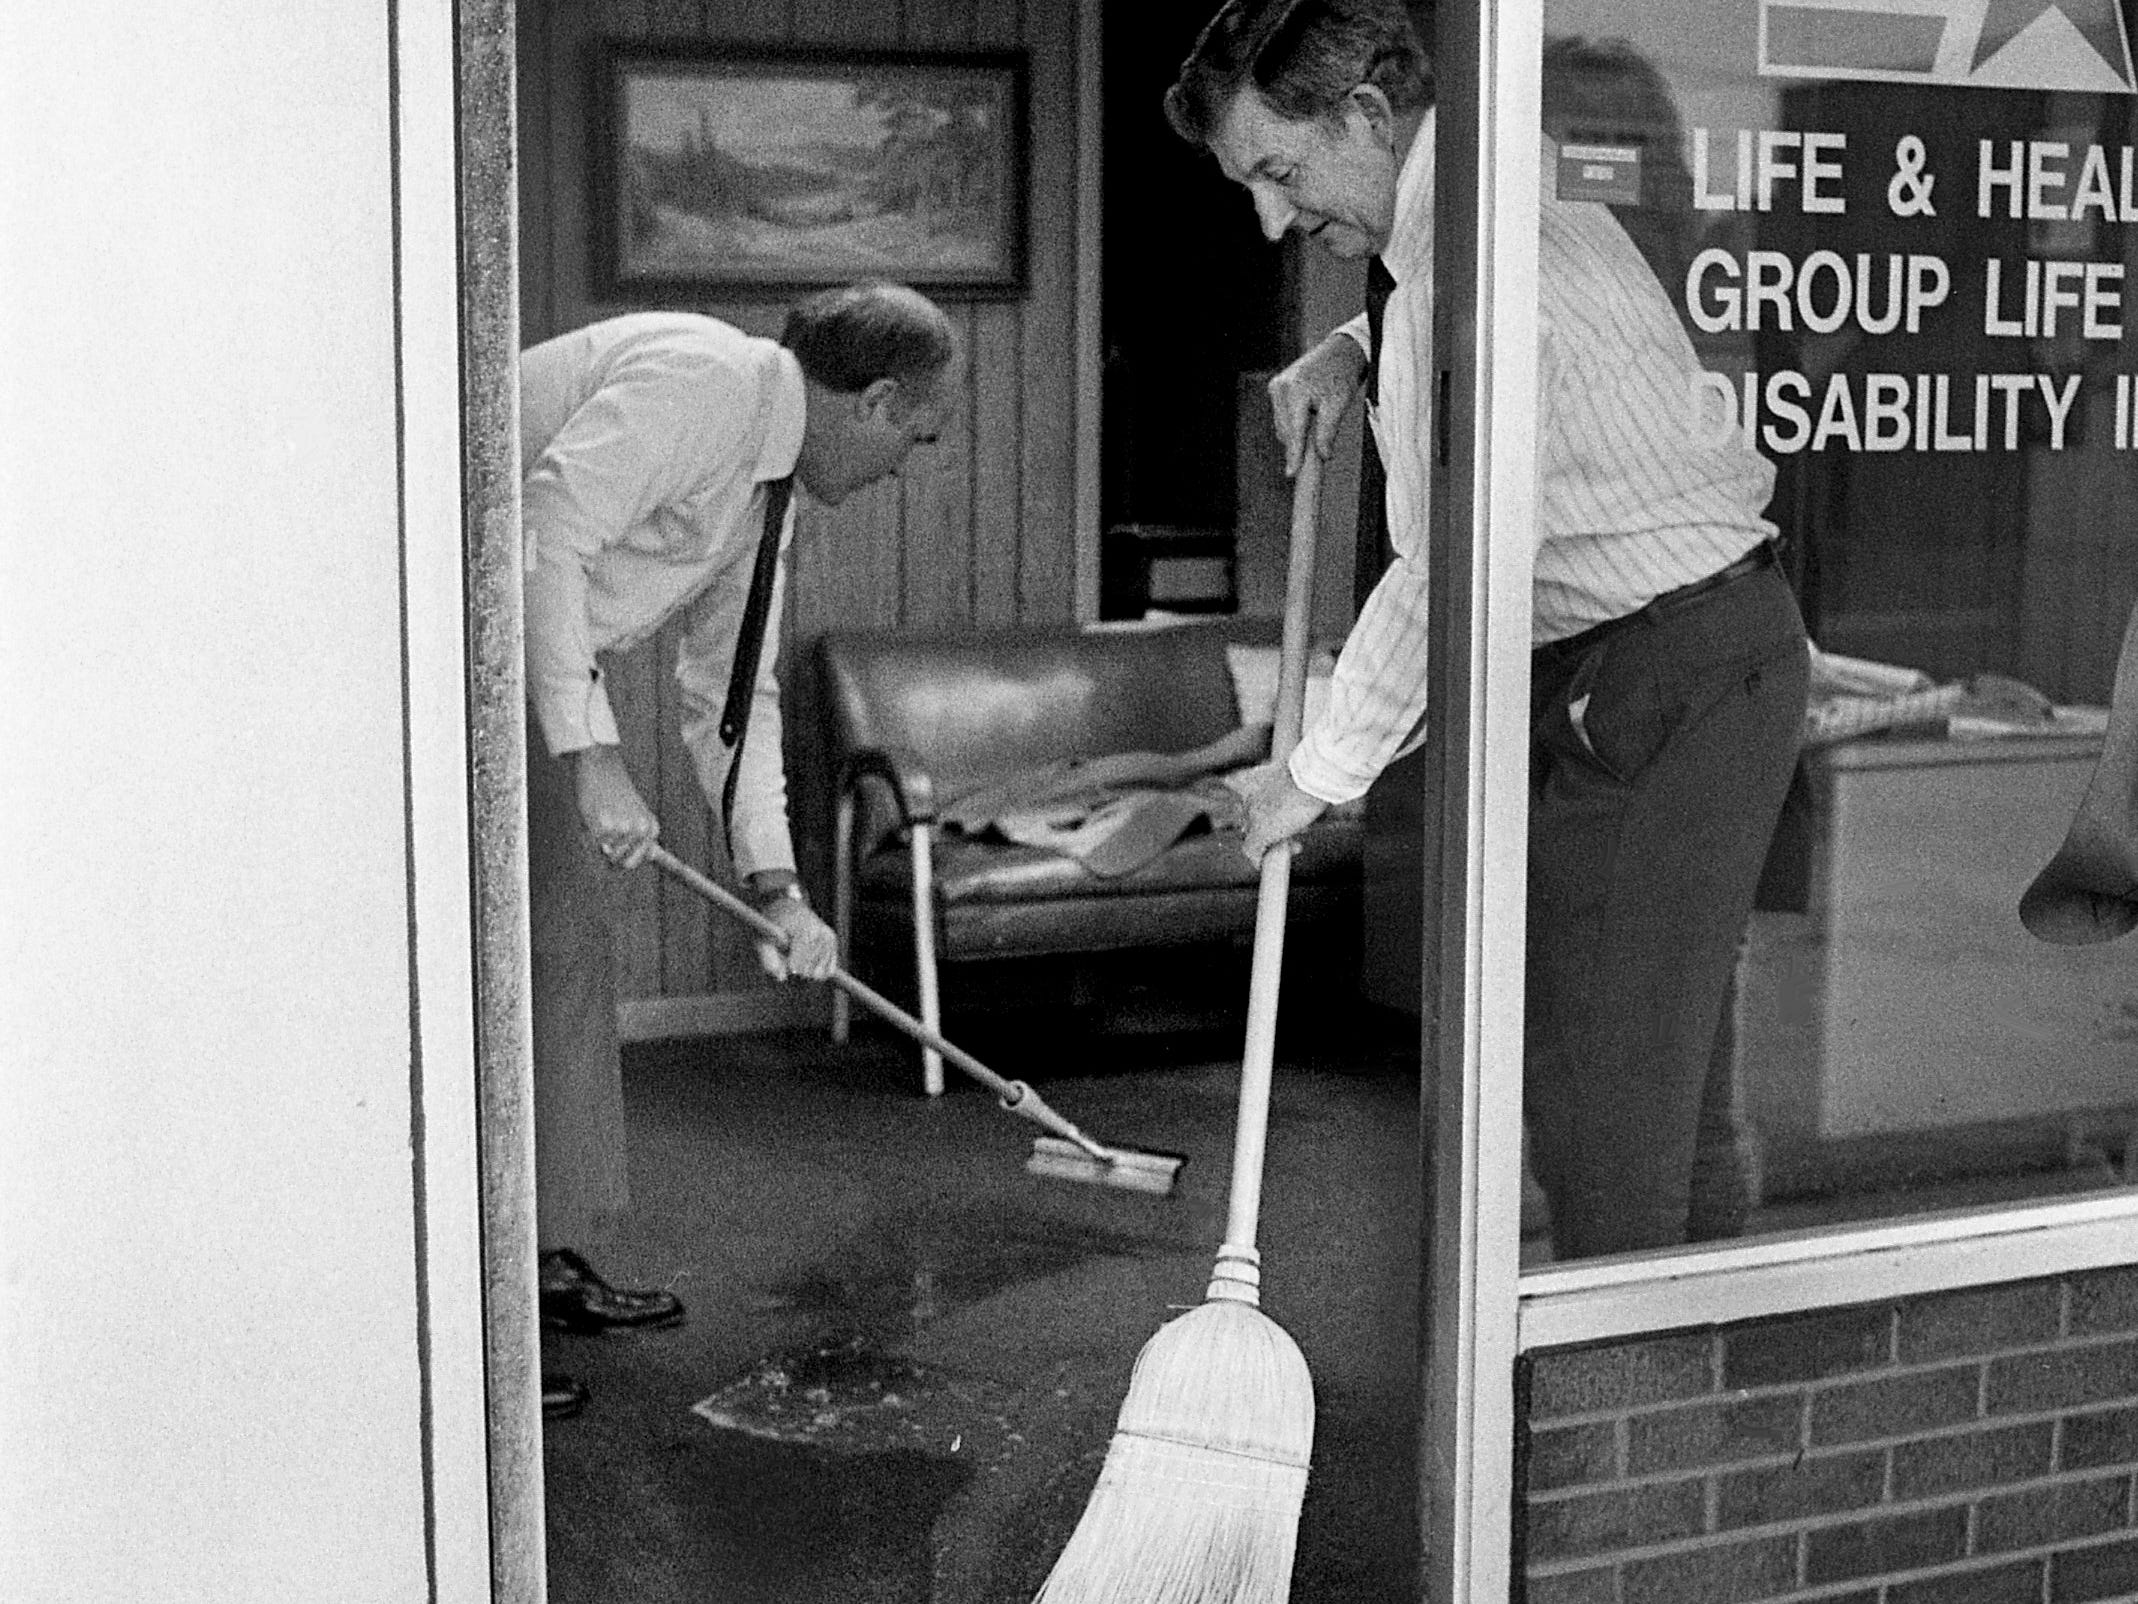 Wayne Beadle and Perry Carlton of the Life of Georgia Insurance Co. begin cleaning up after the water that filled the Lebanon town square receded Feb. 14, 1989. As much as 3 feet of water flooded the town square.